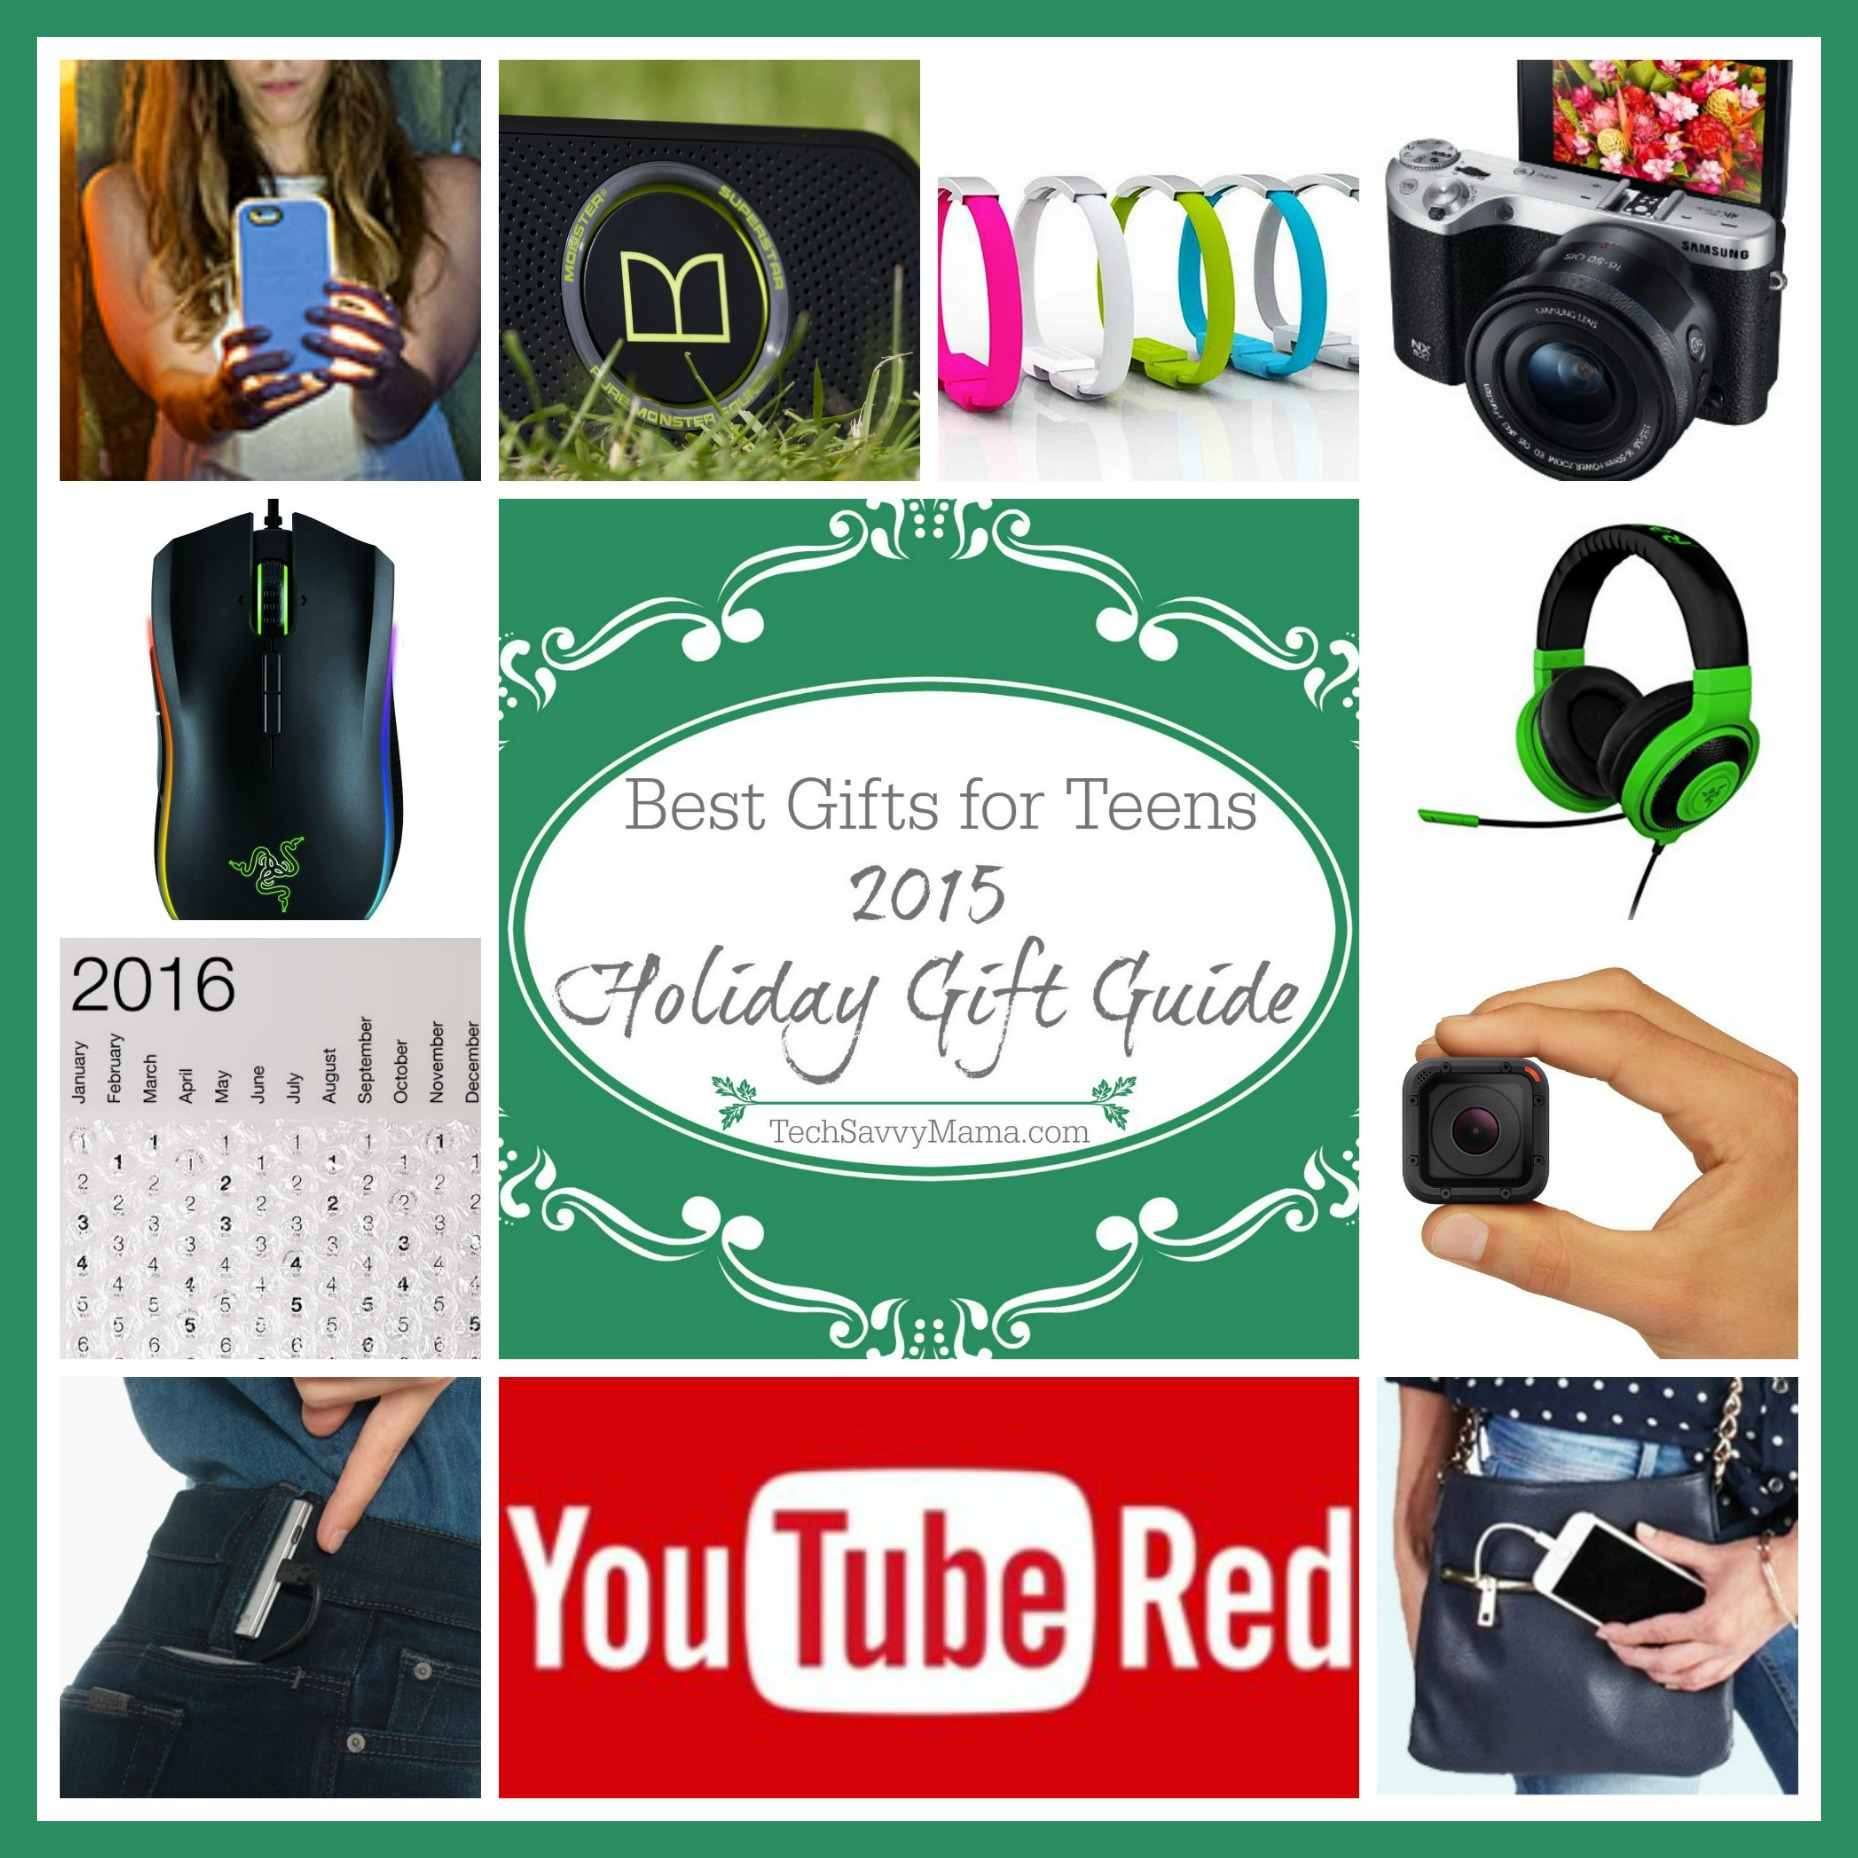 Cool Technology Gifts 2015 2015 Gift Guide Best Gifts For Teens Ages 13 43 Tech